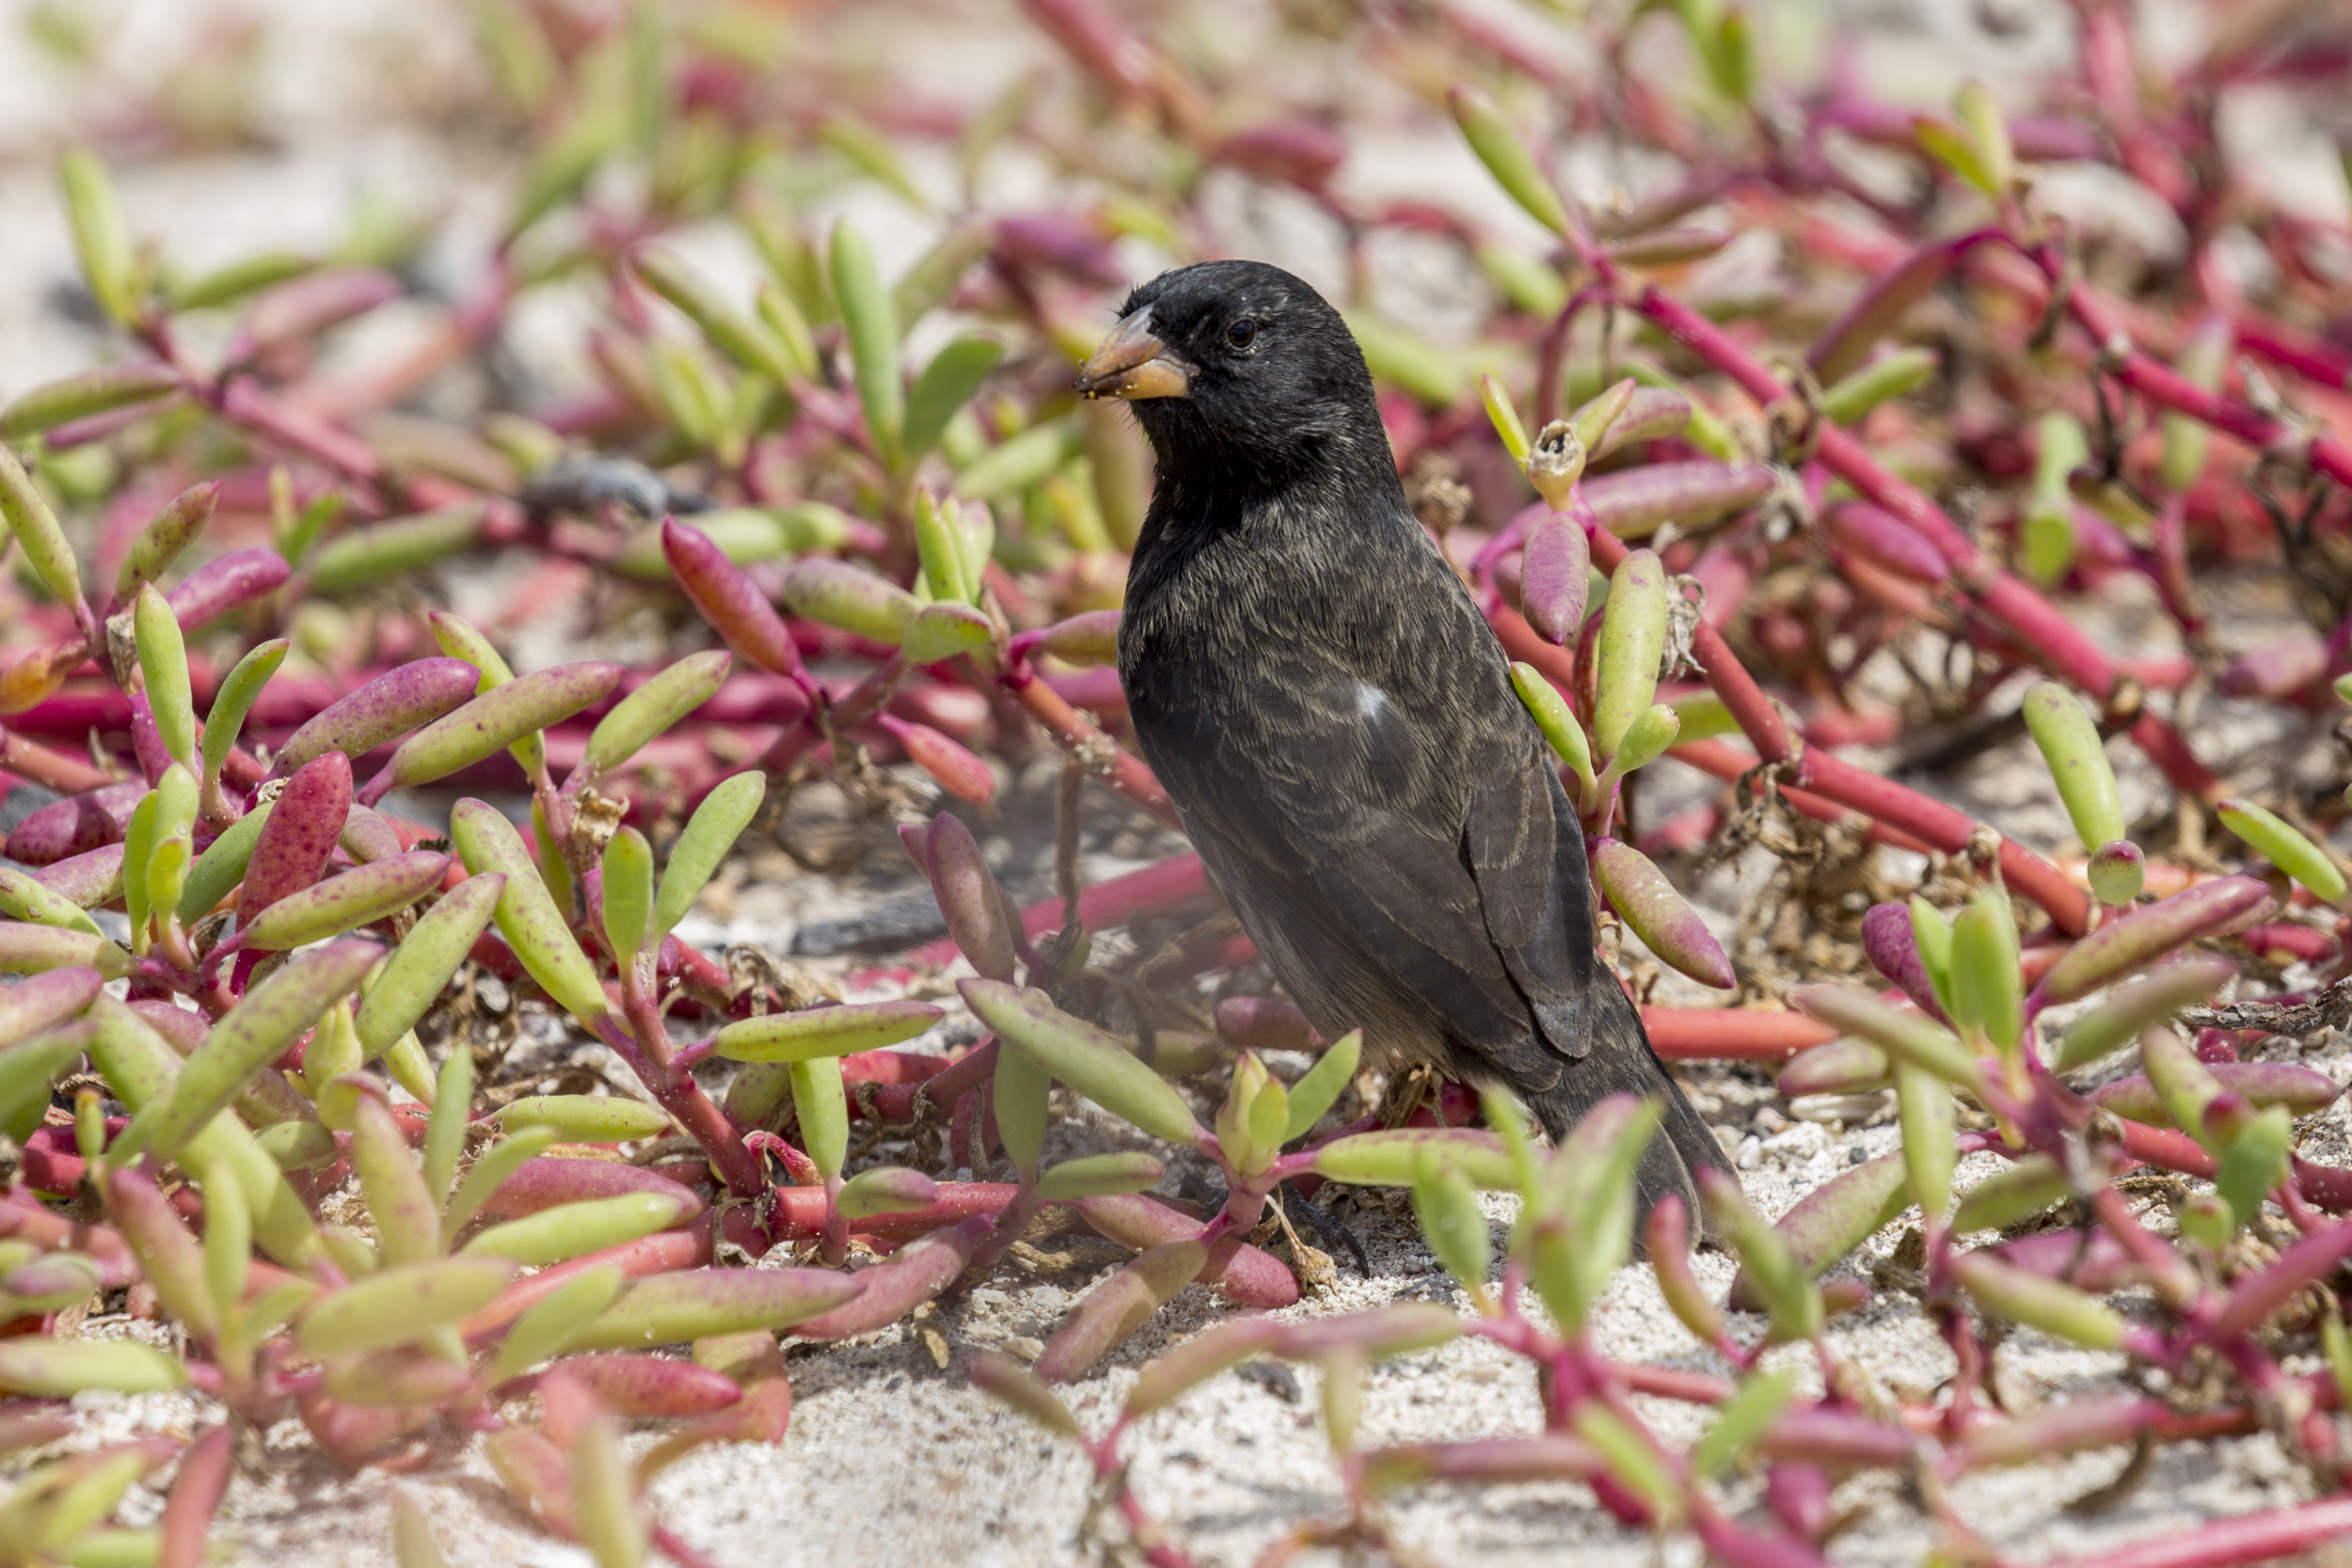 galapagos finches Many theories exist regarding the unique nature of the flora and fauna on the galapagos islands a popularly held belief is that the original species that evolved into the unique galapagos variety found their way to the islands on flotation rafts of vegetation and other waste and were carried to the island via wind and sea currents.